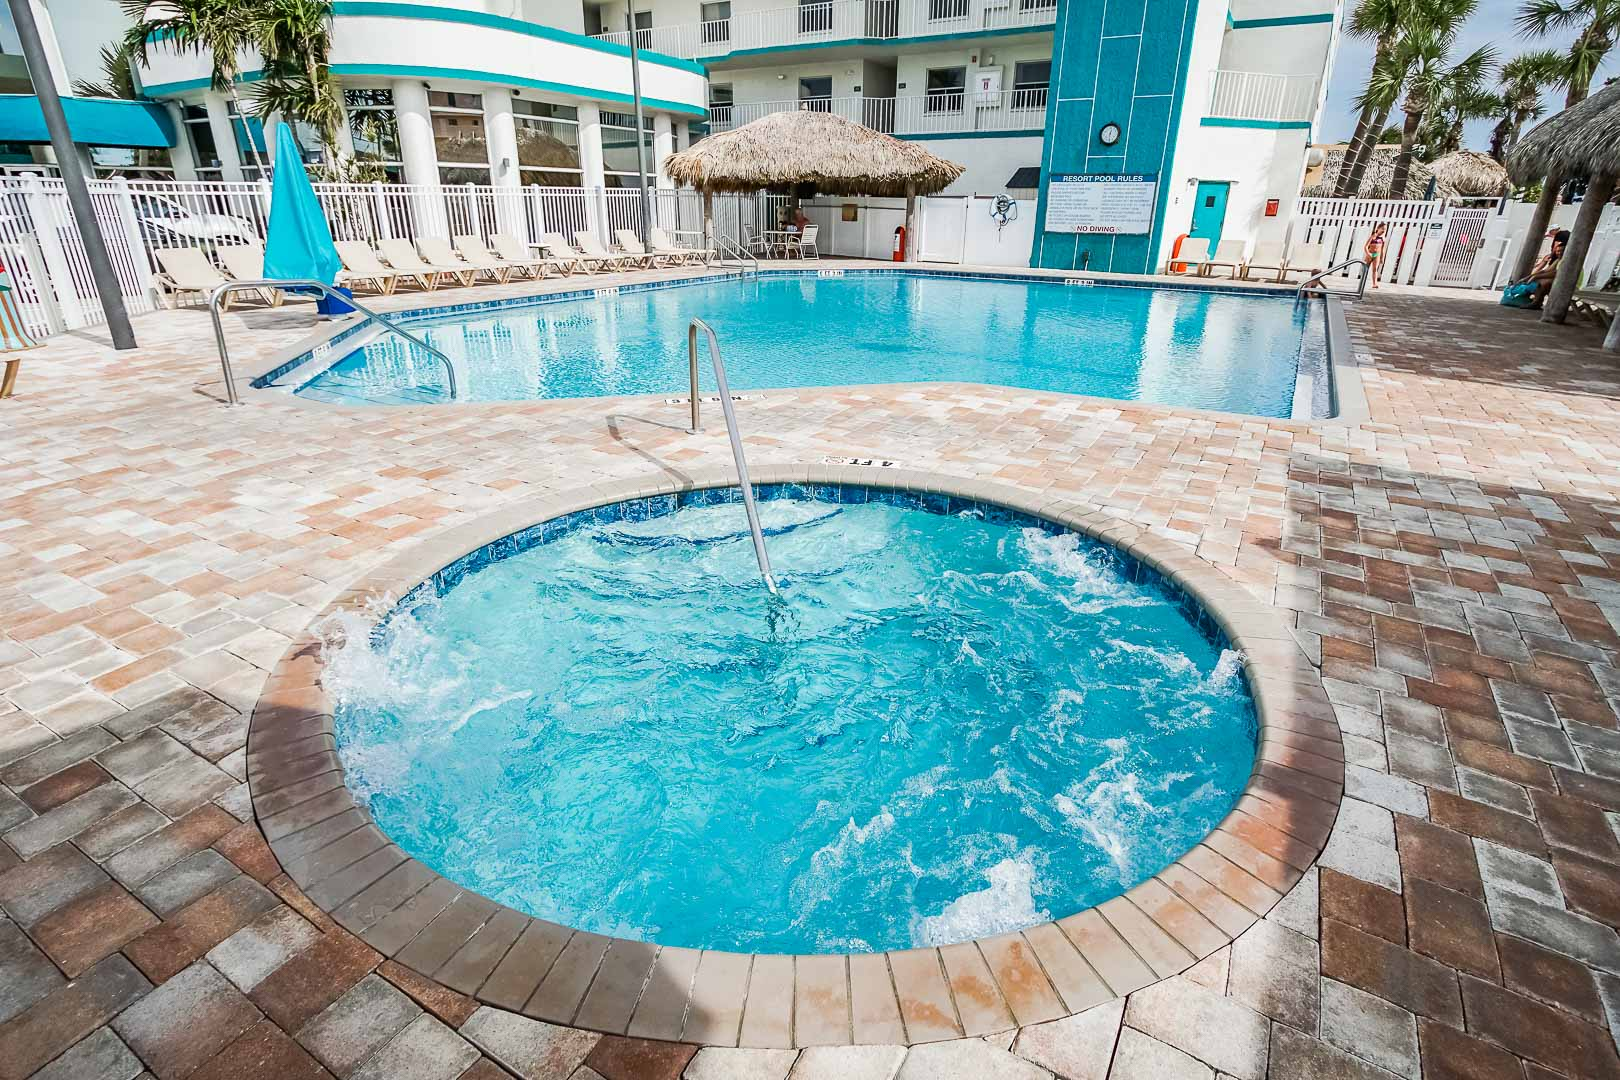 An outdoor Jacuzzi tub at VRI's Discovery Beach Resort in Cocoa Beach, Florida.